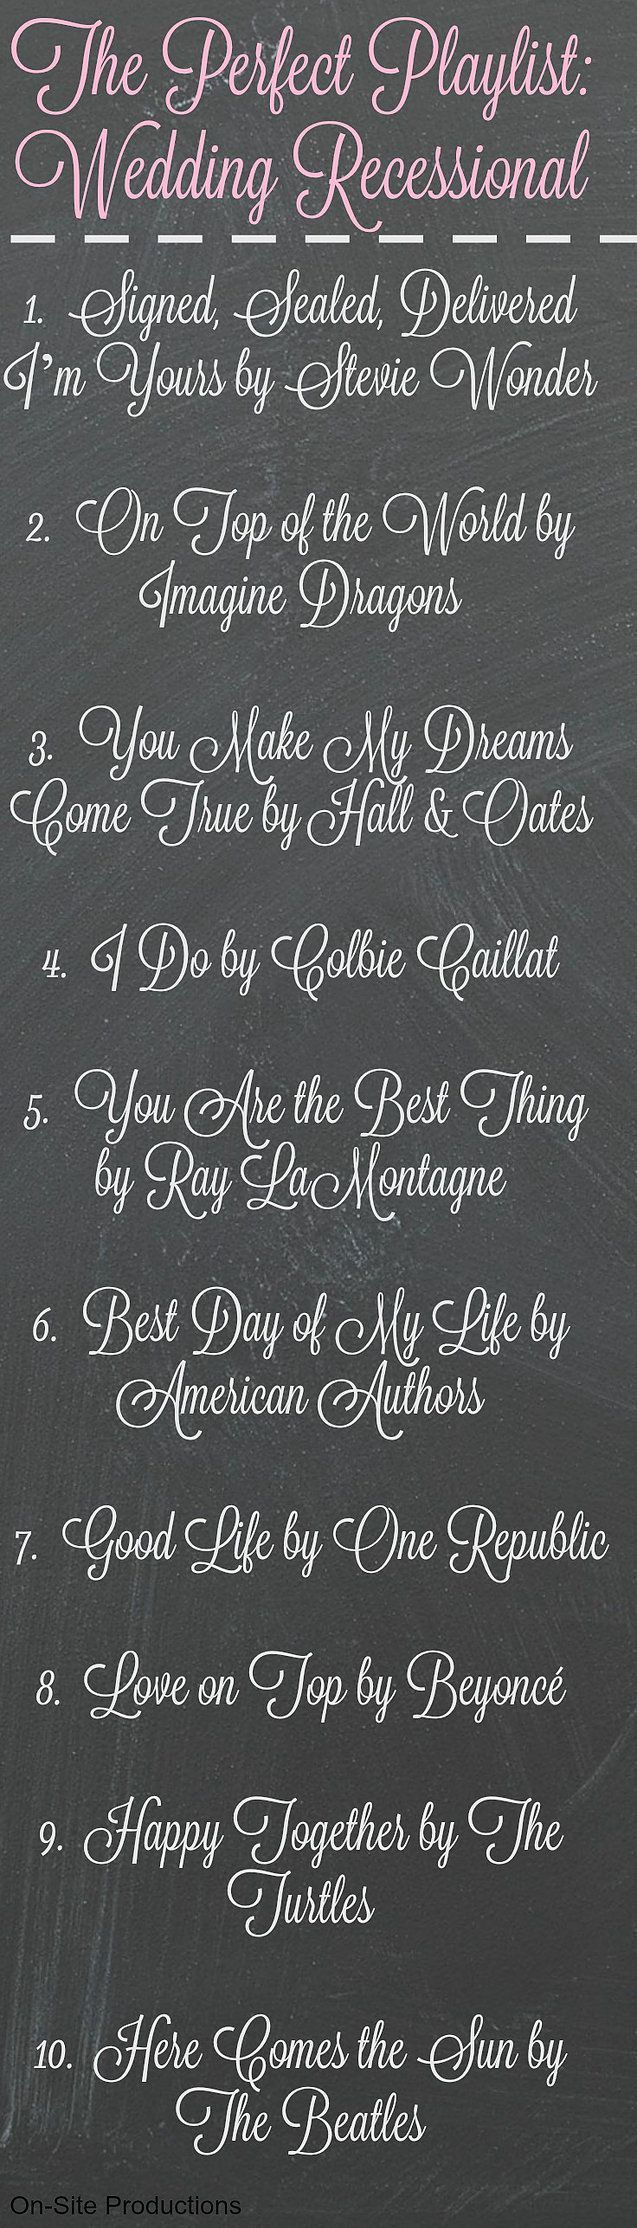 10 Songs For Your Wedding Recessional I Love All Of These Fun Upbeat Songs To Play For My Reces Wedding Songs Wedding Songs Reception Wedding Ceremony Songs